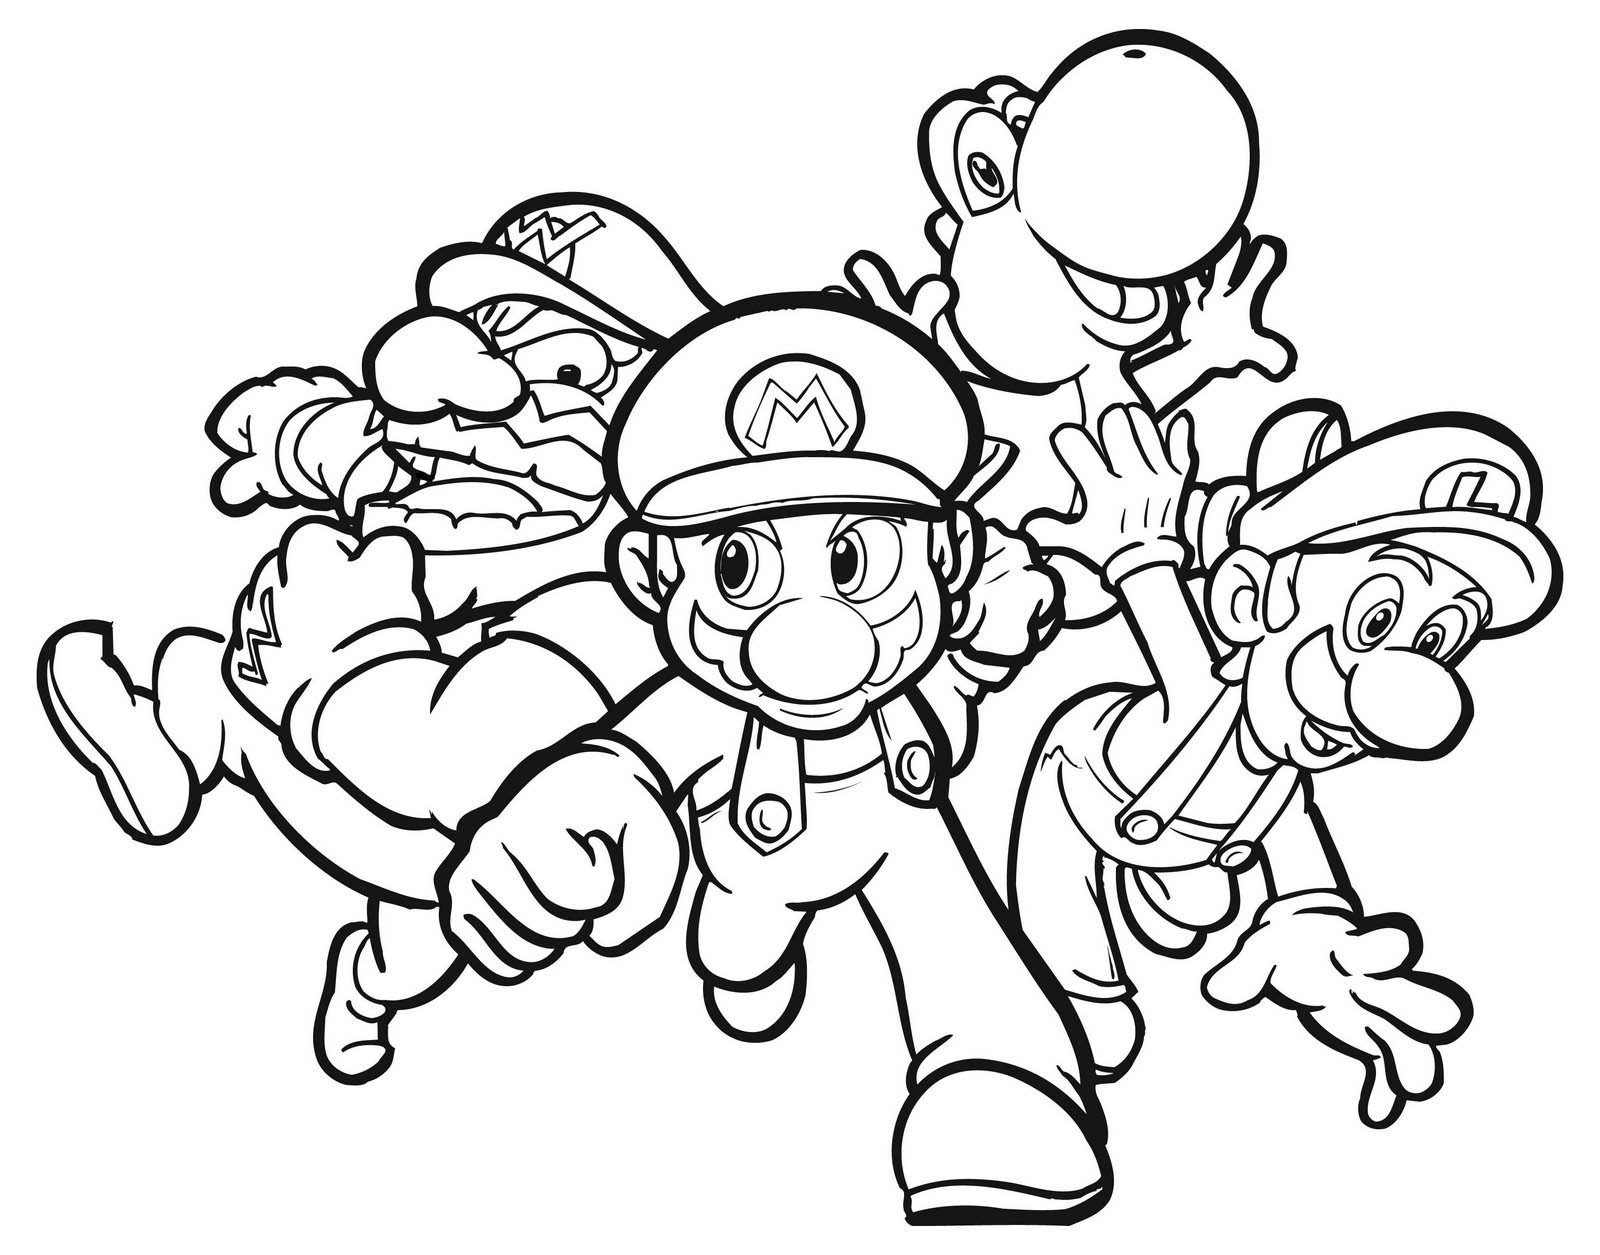 1600x1255 Mario Coloring Pages To Print